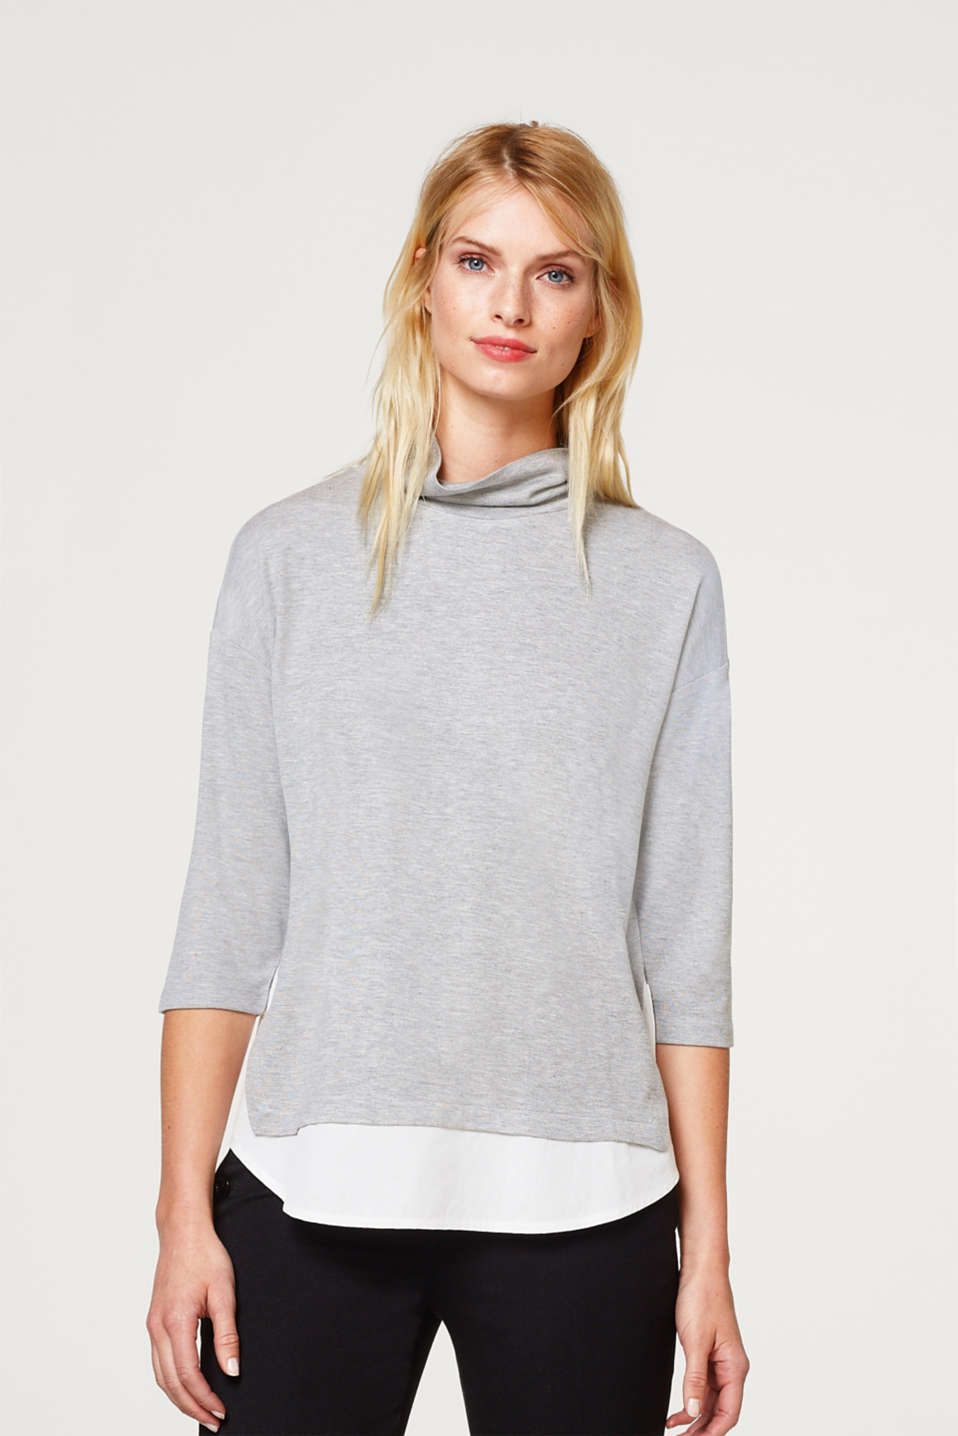 Esprit - 2-in-1 top with a cloth hem